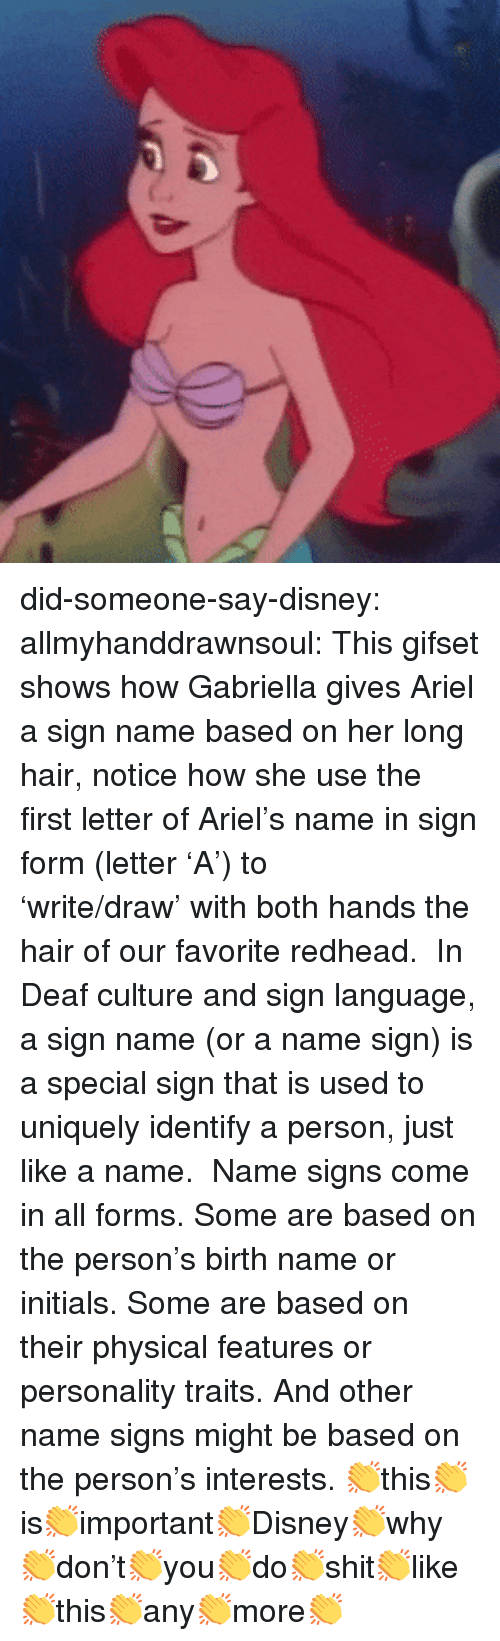 initials: did-someone-say-disney: allmyhanddrawnsoul:    This gifset shows how Gabriella gives Ariel a sign name based on her long hair, notice how she use the first letter of Ariel's name in sign form (letter 'A') to 'write/draw'with both hands the hair of our favorite redhead.   In Deaf culture and sign language, a sign name (or a name sign) is a special sign that is used to uniquely identify a person, just like a name.   Name signs come in all forms. Some are based on the person's birth name or initials. Some are based on their physical featuresor personality traits. And other name signs might be based on the person's interests.     👏this👏is👏important👏Disney👏why👏don't👏you👏do👏shit👏like👏this👏any👏more👏